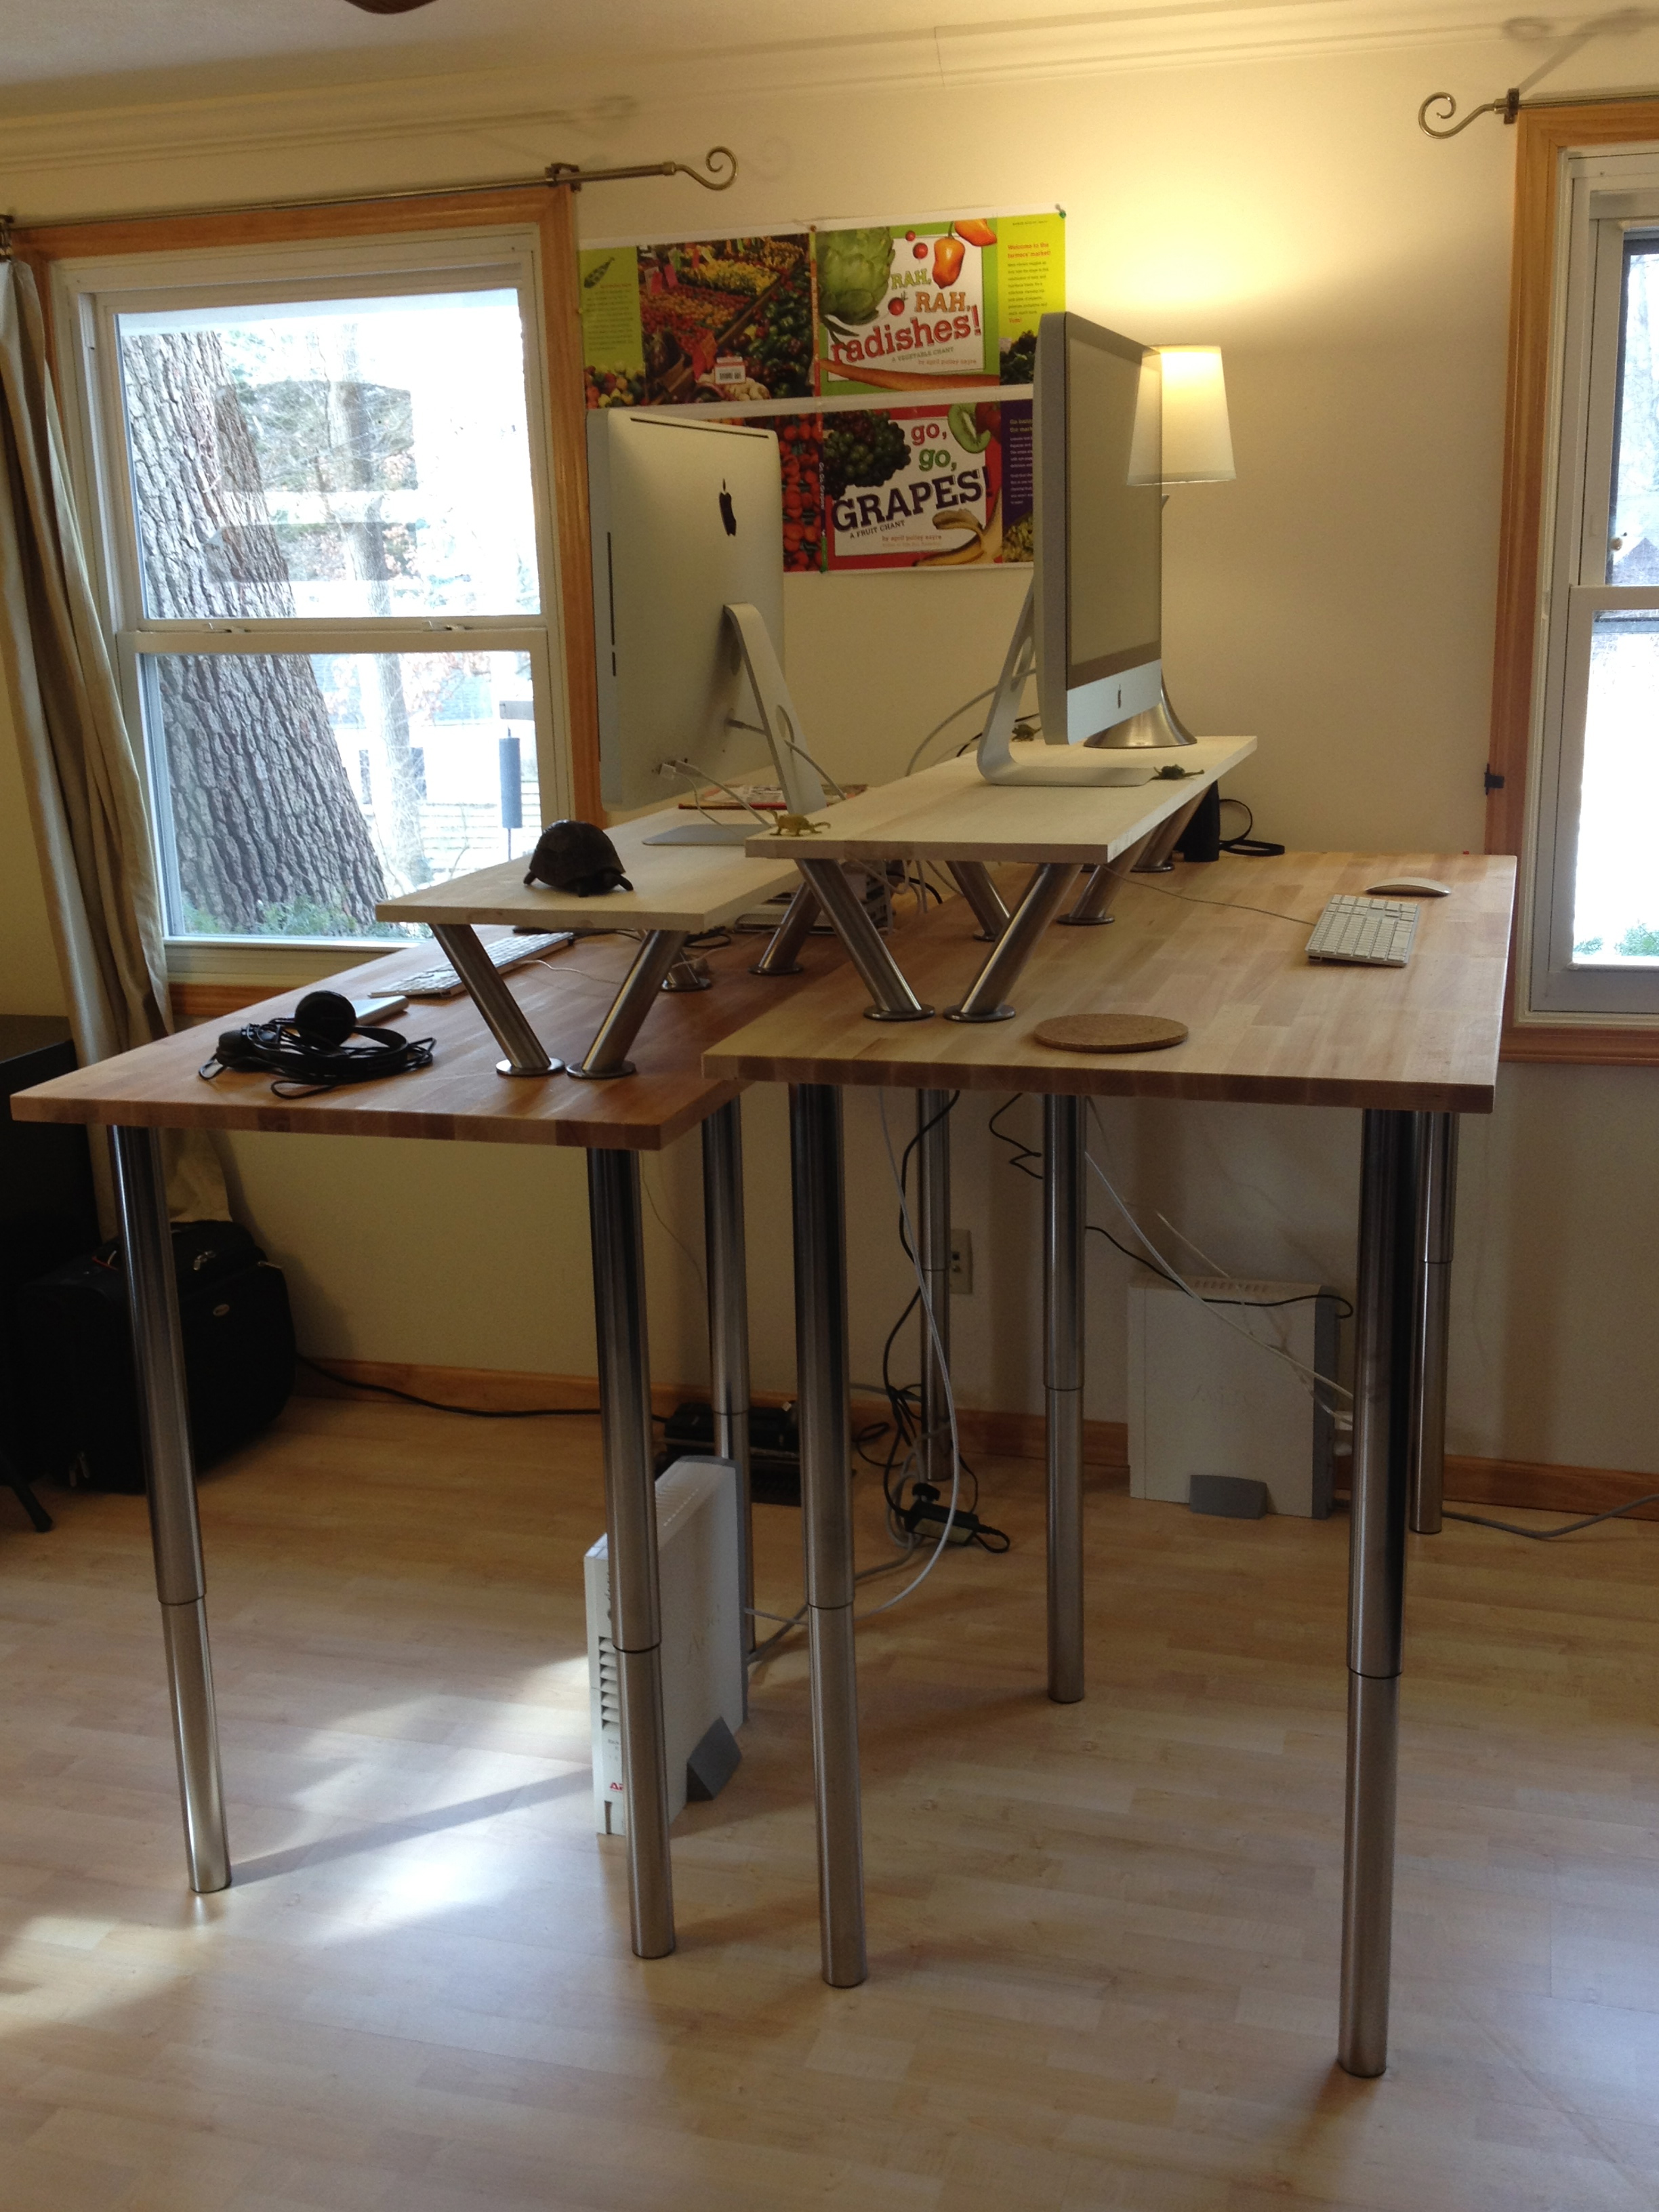 21 diy standing or stand up desk ideas guide patterns Diy work desk